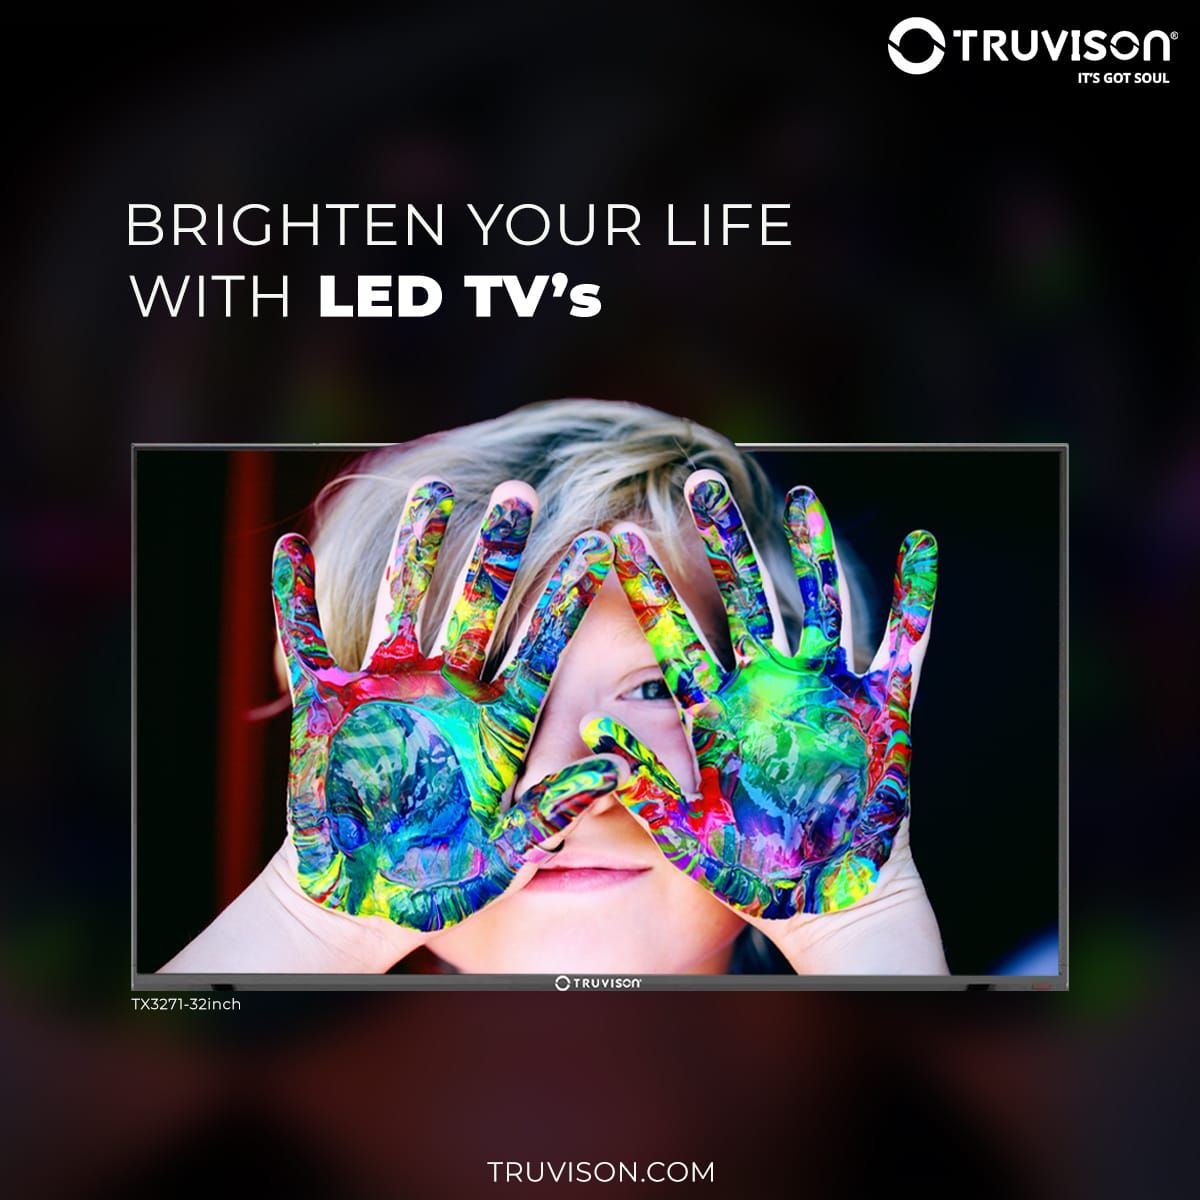 We thrive by providing value for money products to our valued customers, with our LED TV's manufactured with Tru Color Technology you can see the vivid details in every frame. #TX3271   #Truvison #TruPricey #Netflix #AmazonPrime #4K #SmartTV #FridayThoughts